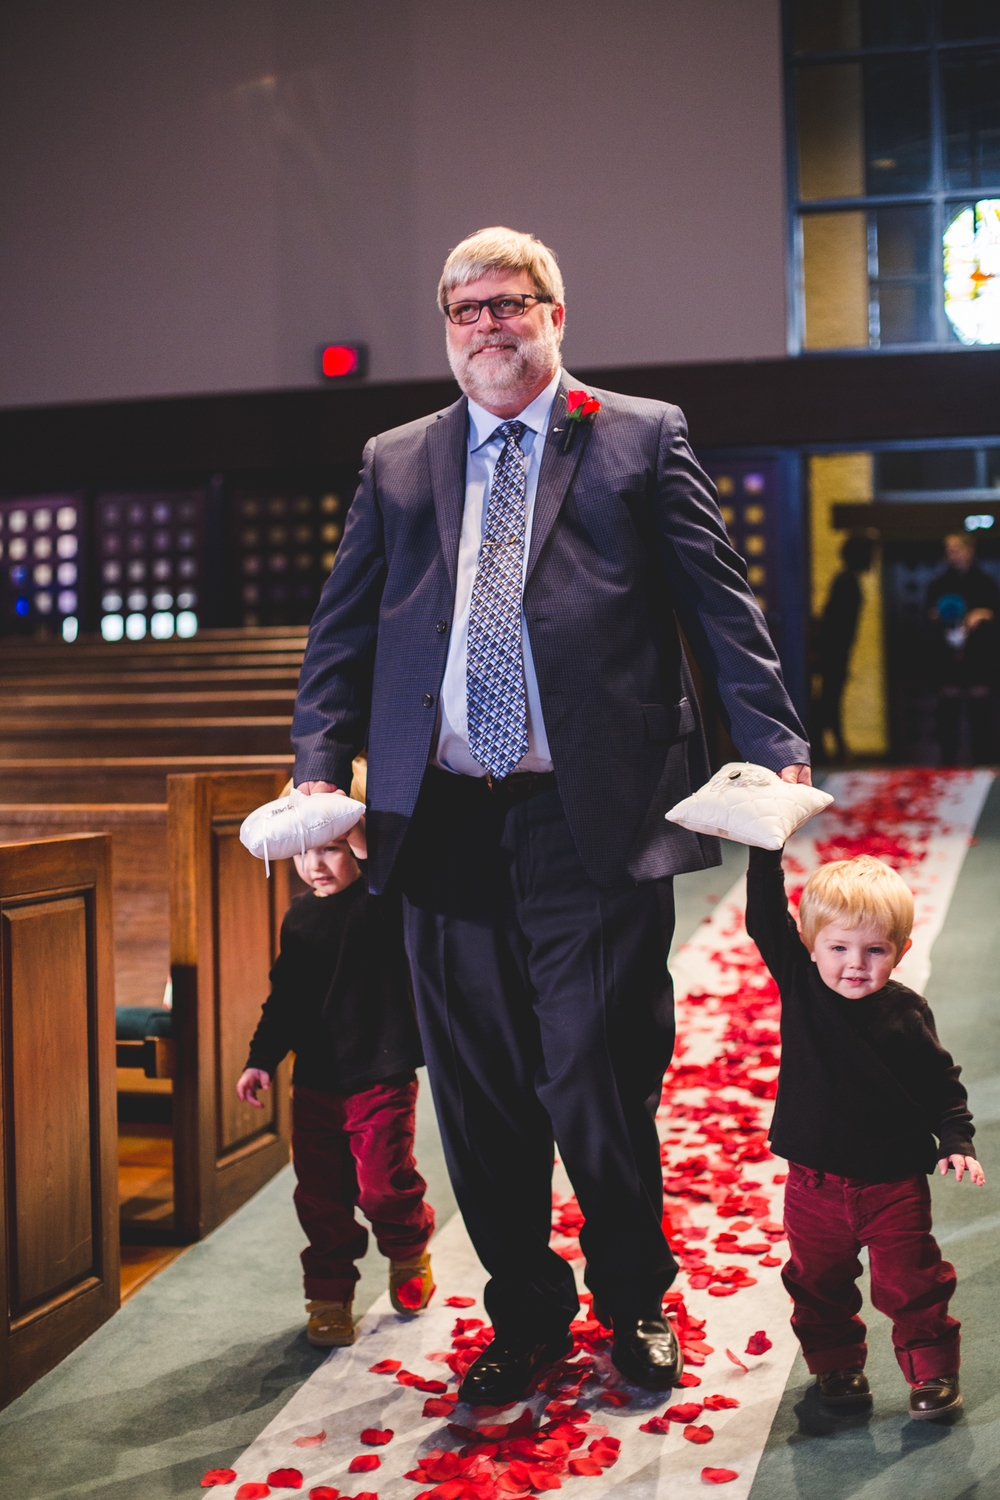 rs ring bearers come down aisle